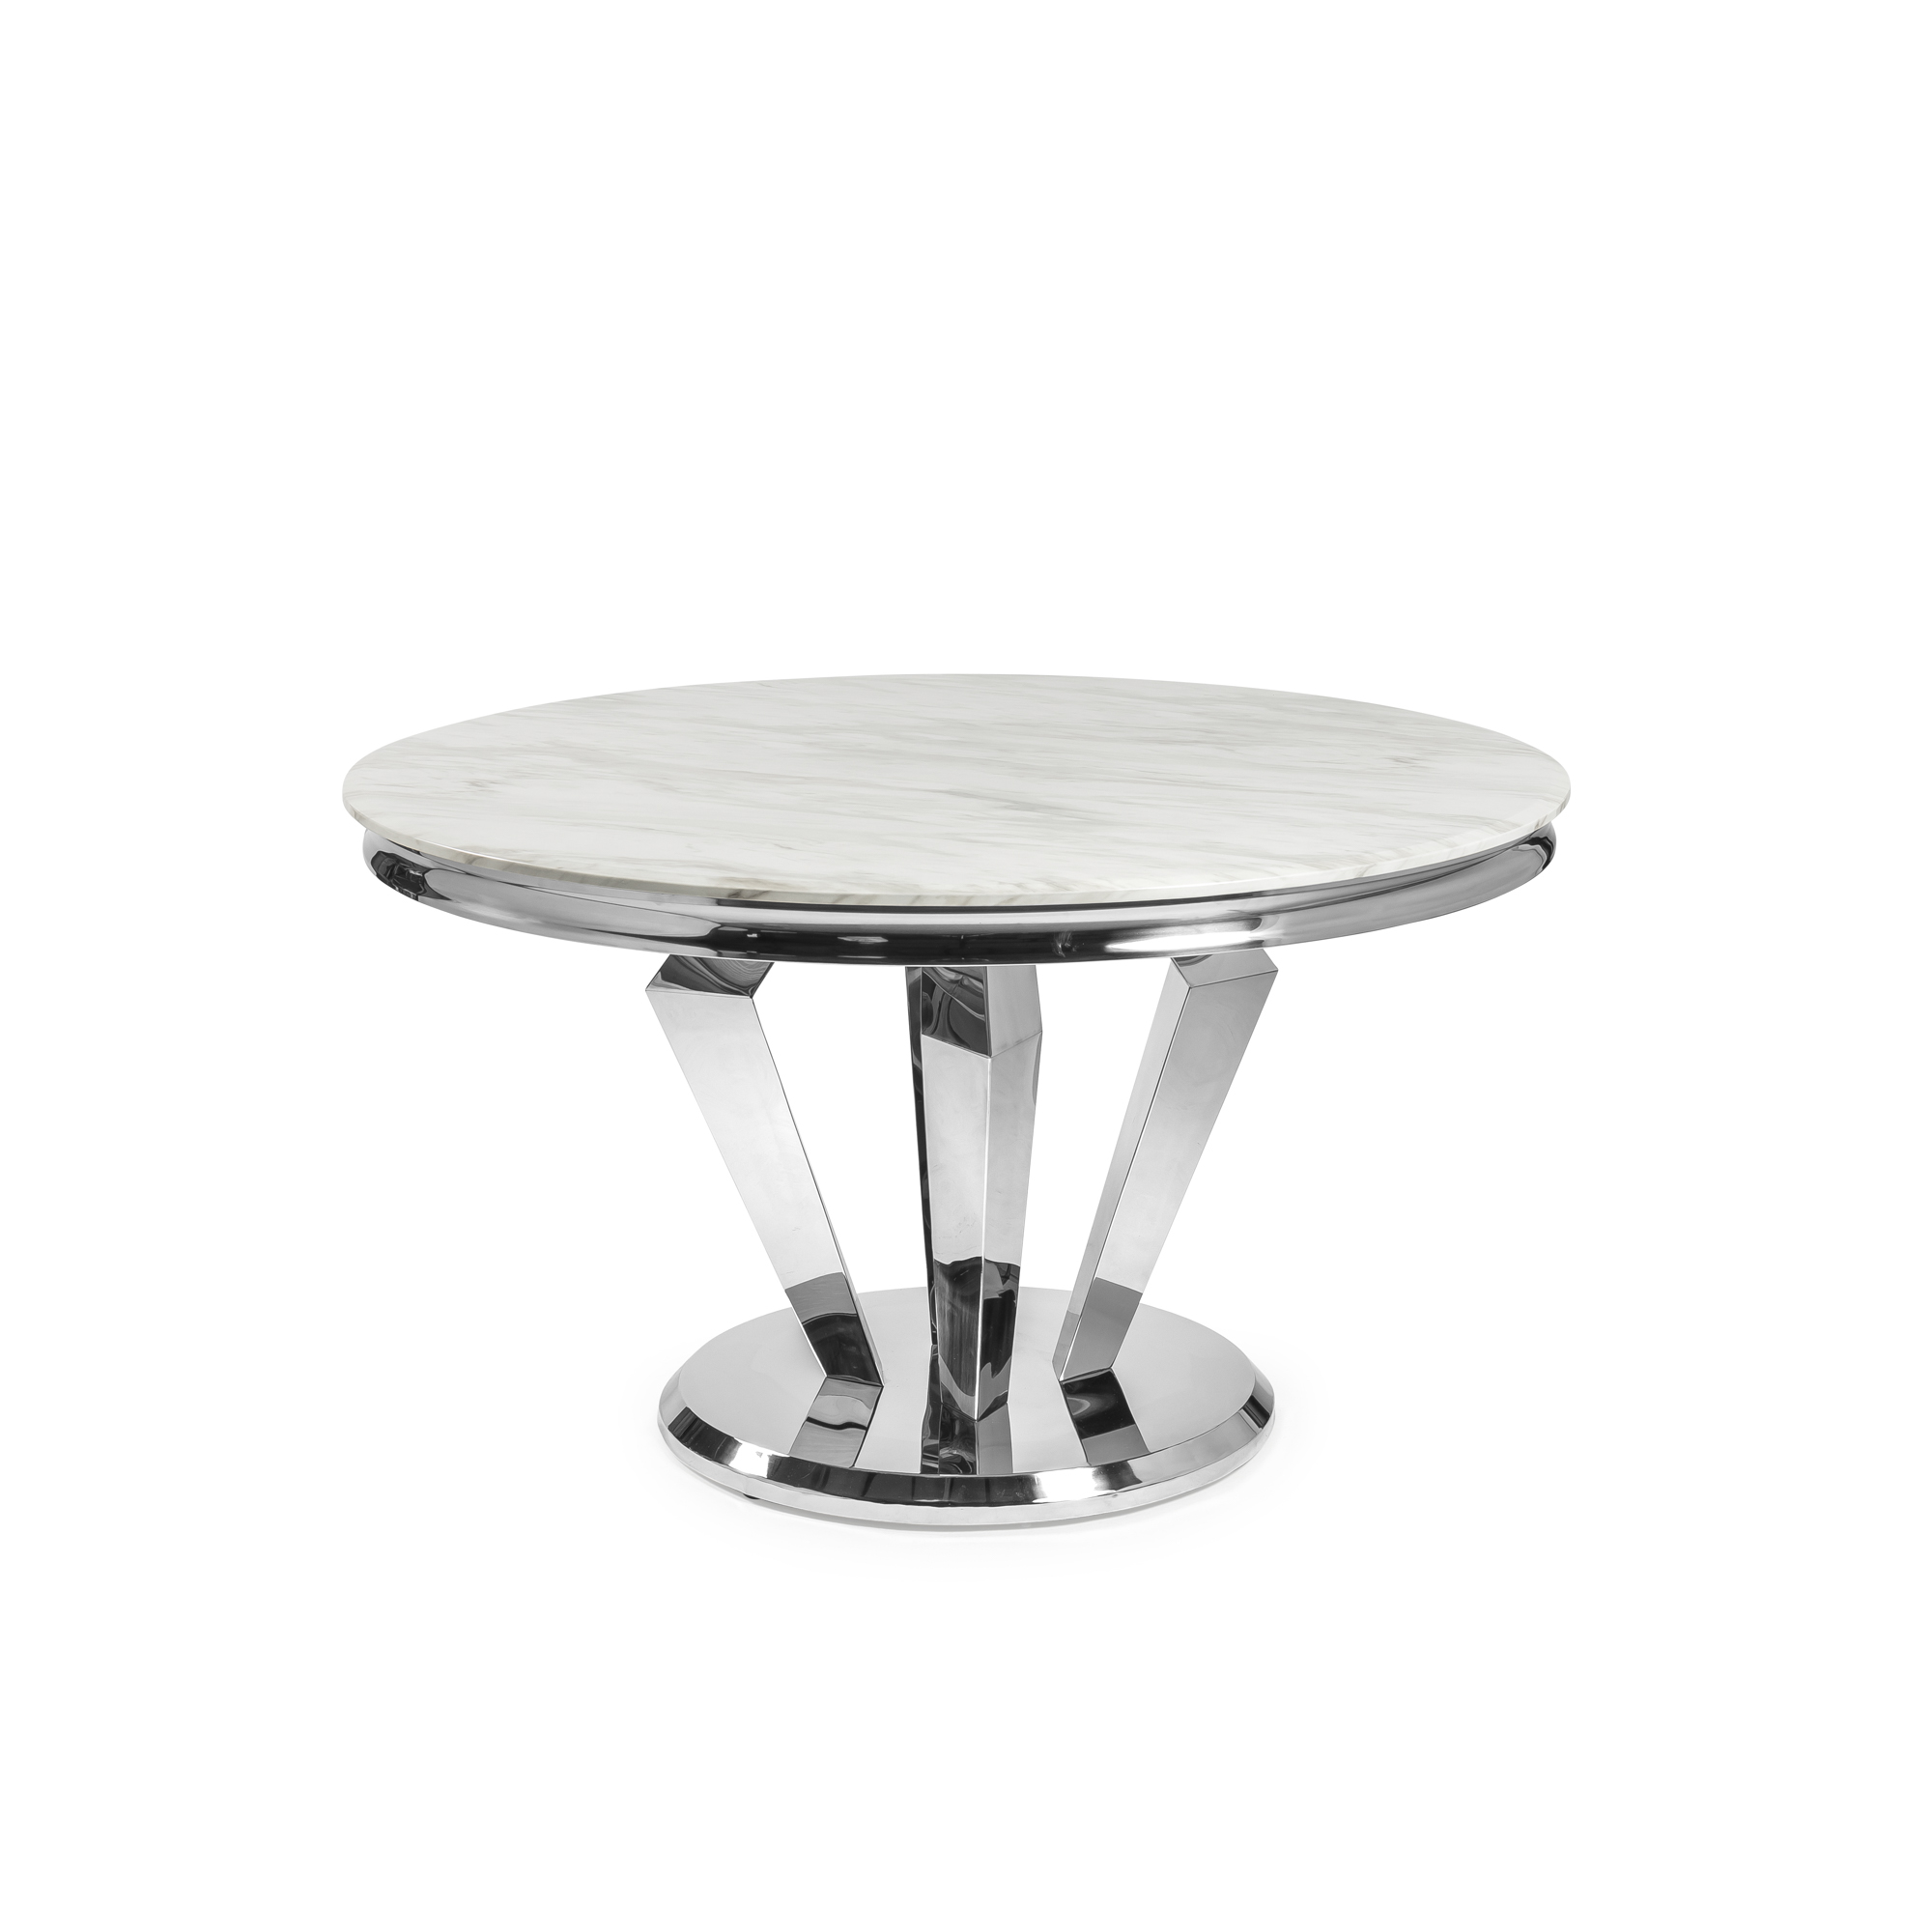 1.3M Circular Marble Dining Table with Stainless Steel Legs